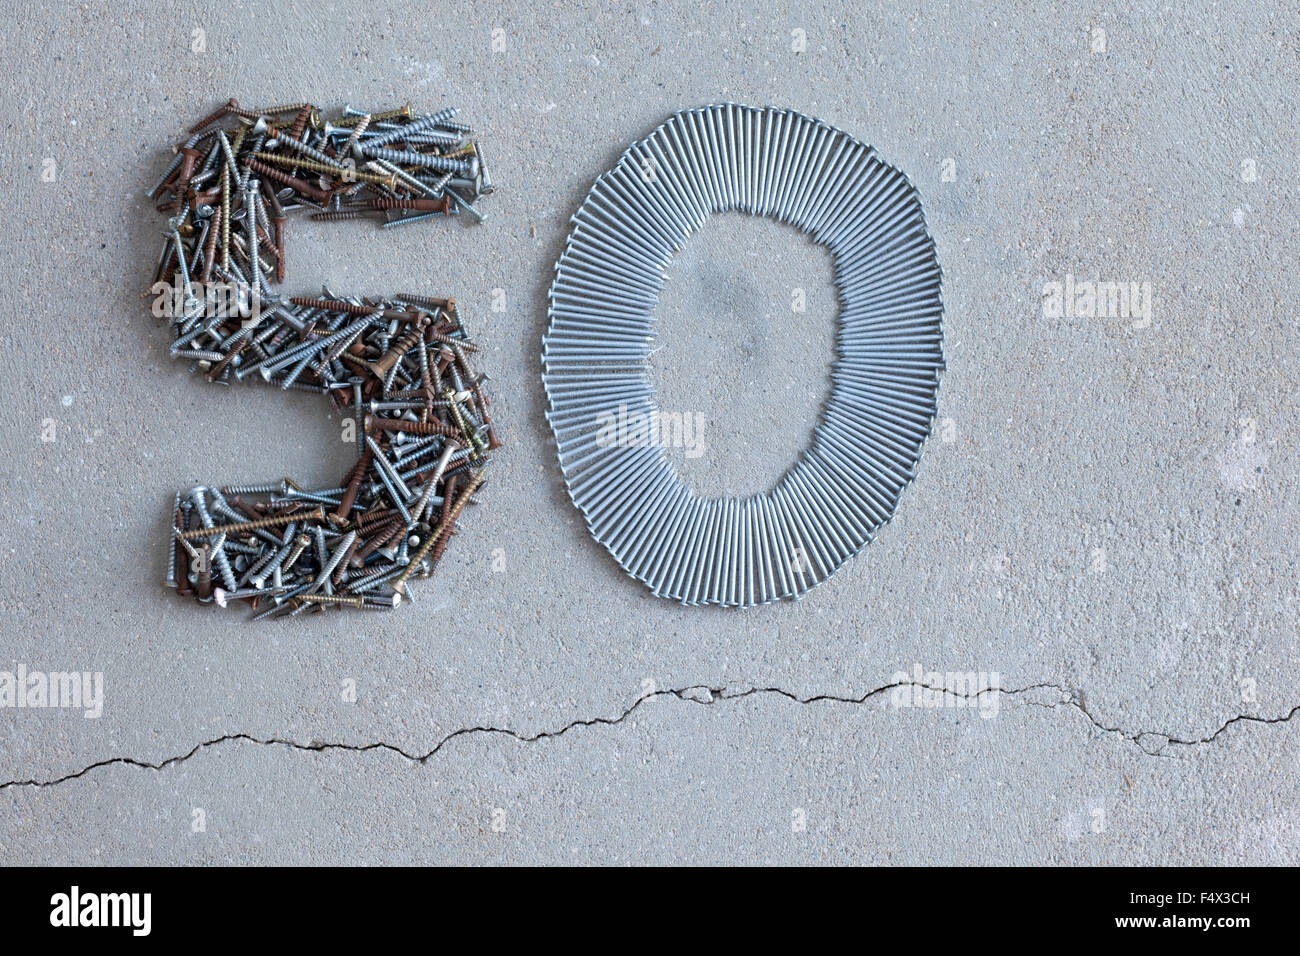 50 fifty number arranged out of old screws and nails on a concrete floor - Stock Image